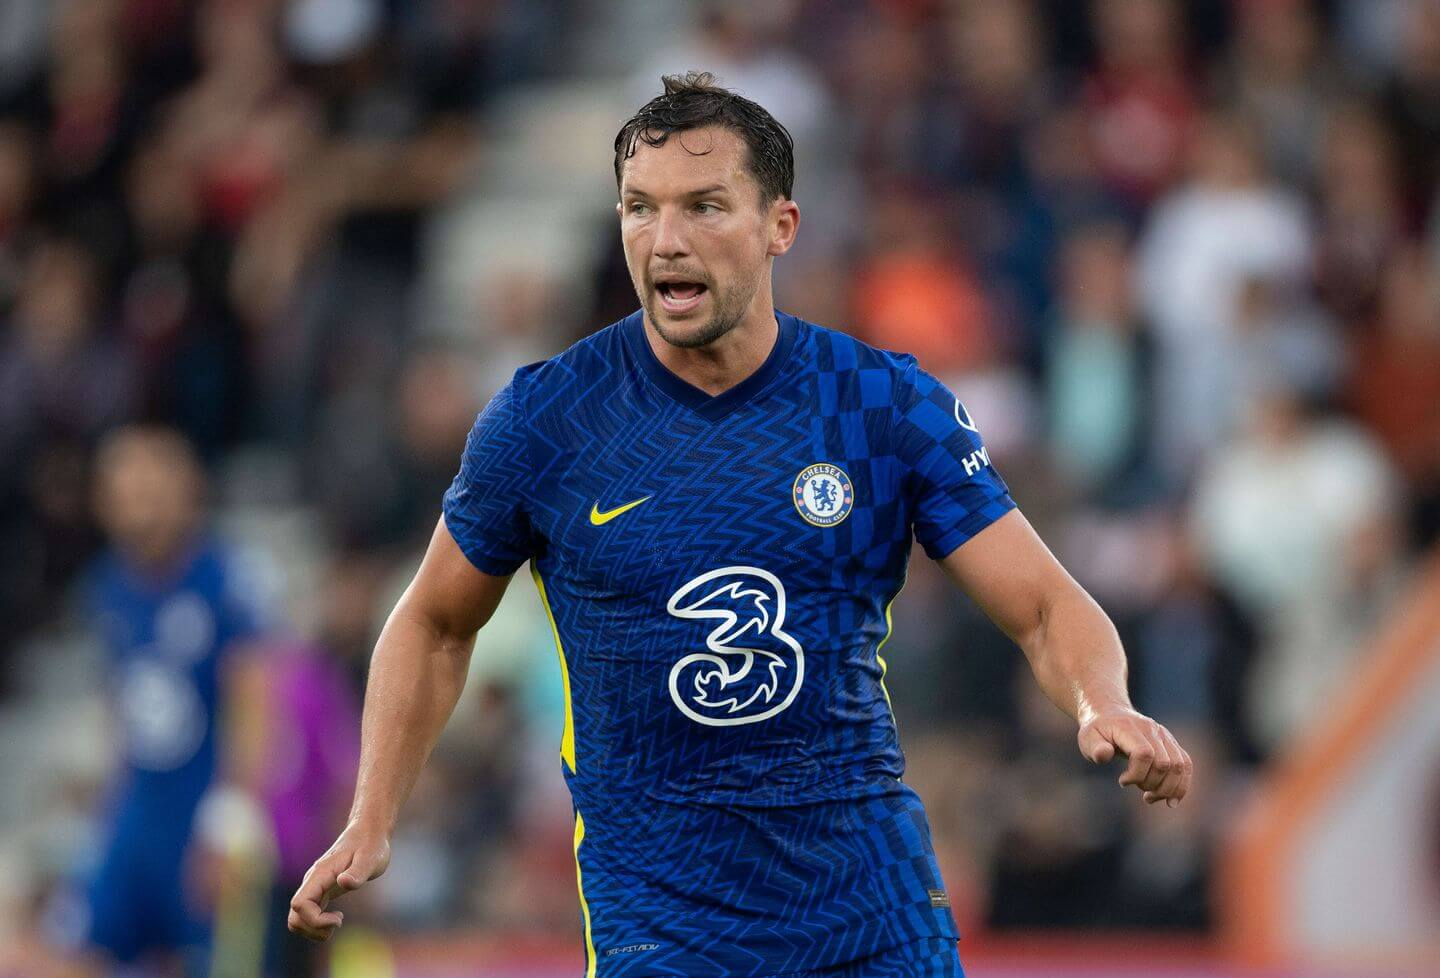 Danny Drinkwater Makes A Return To English Football After Being Out For 19 Months